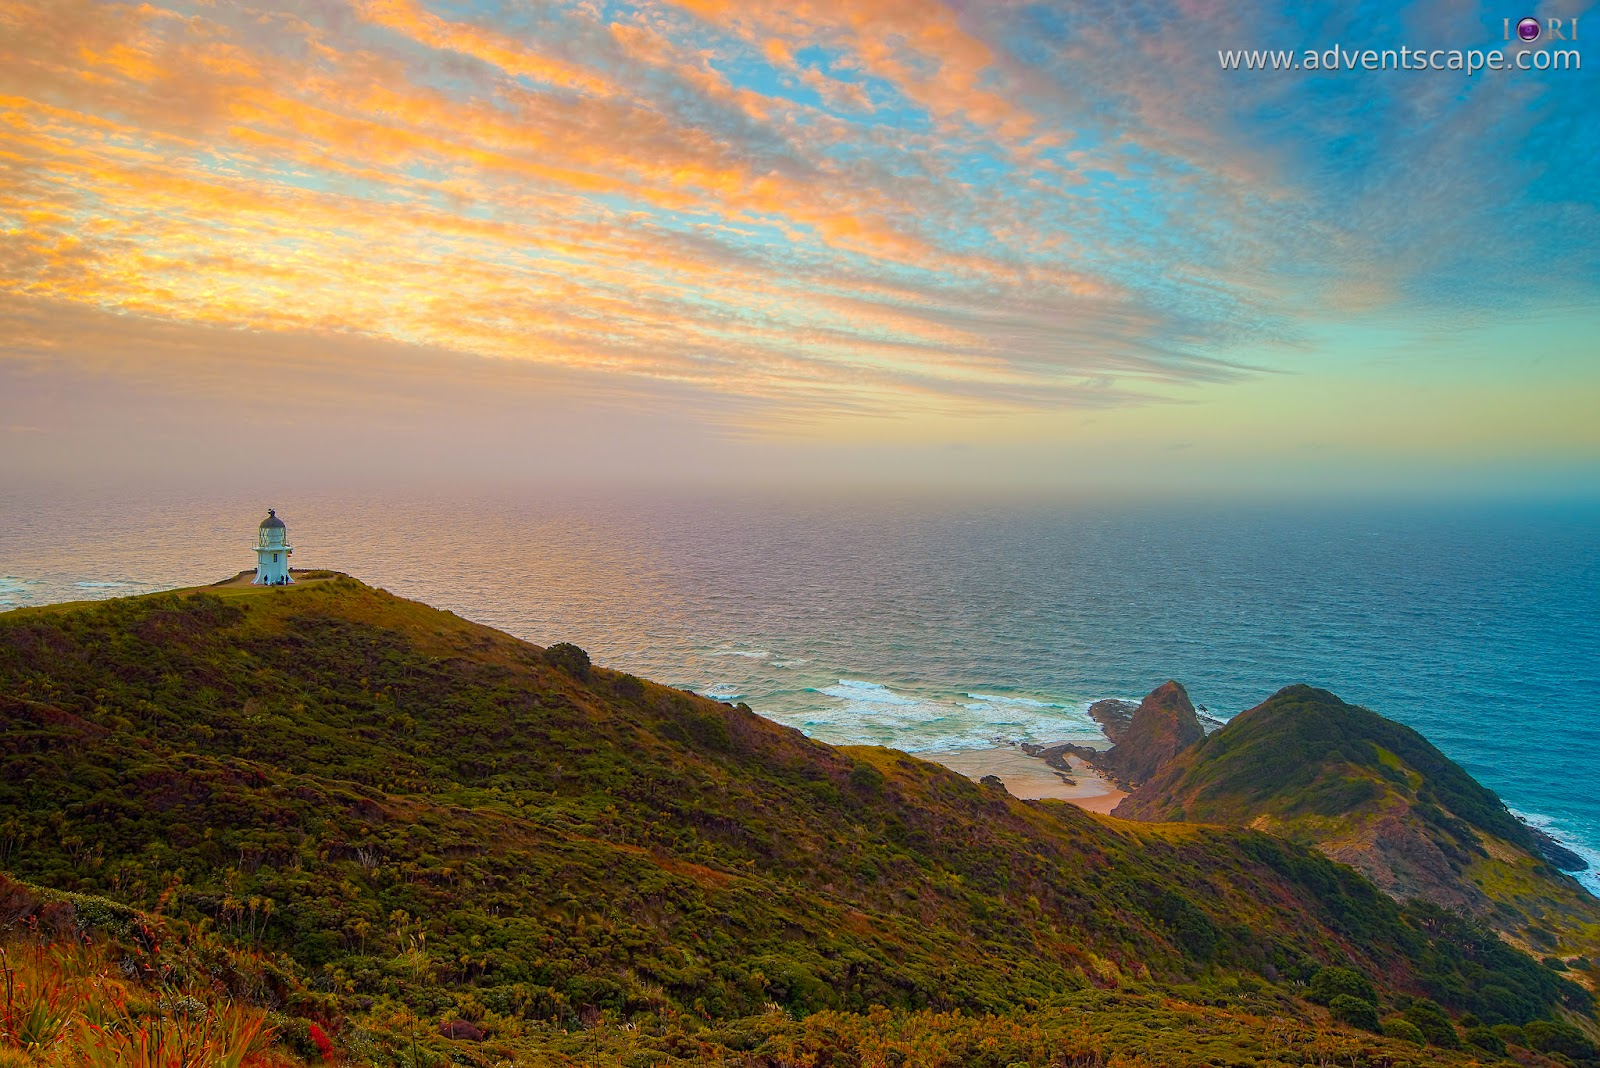 Philip Avellana, iori, adventscape, Cape Reinga, NZ, New Zealand, Te Paki, national park, lighthouse, landscape, seascape, sunset, north island, sparse